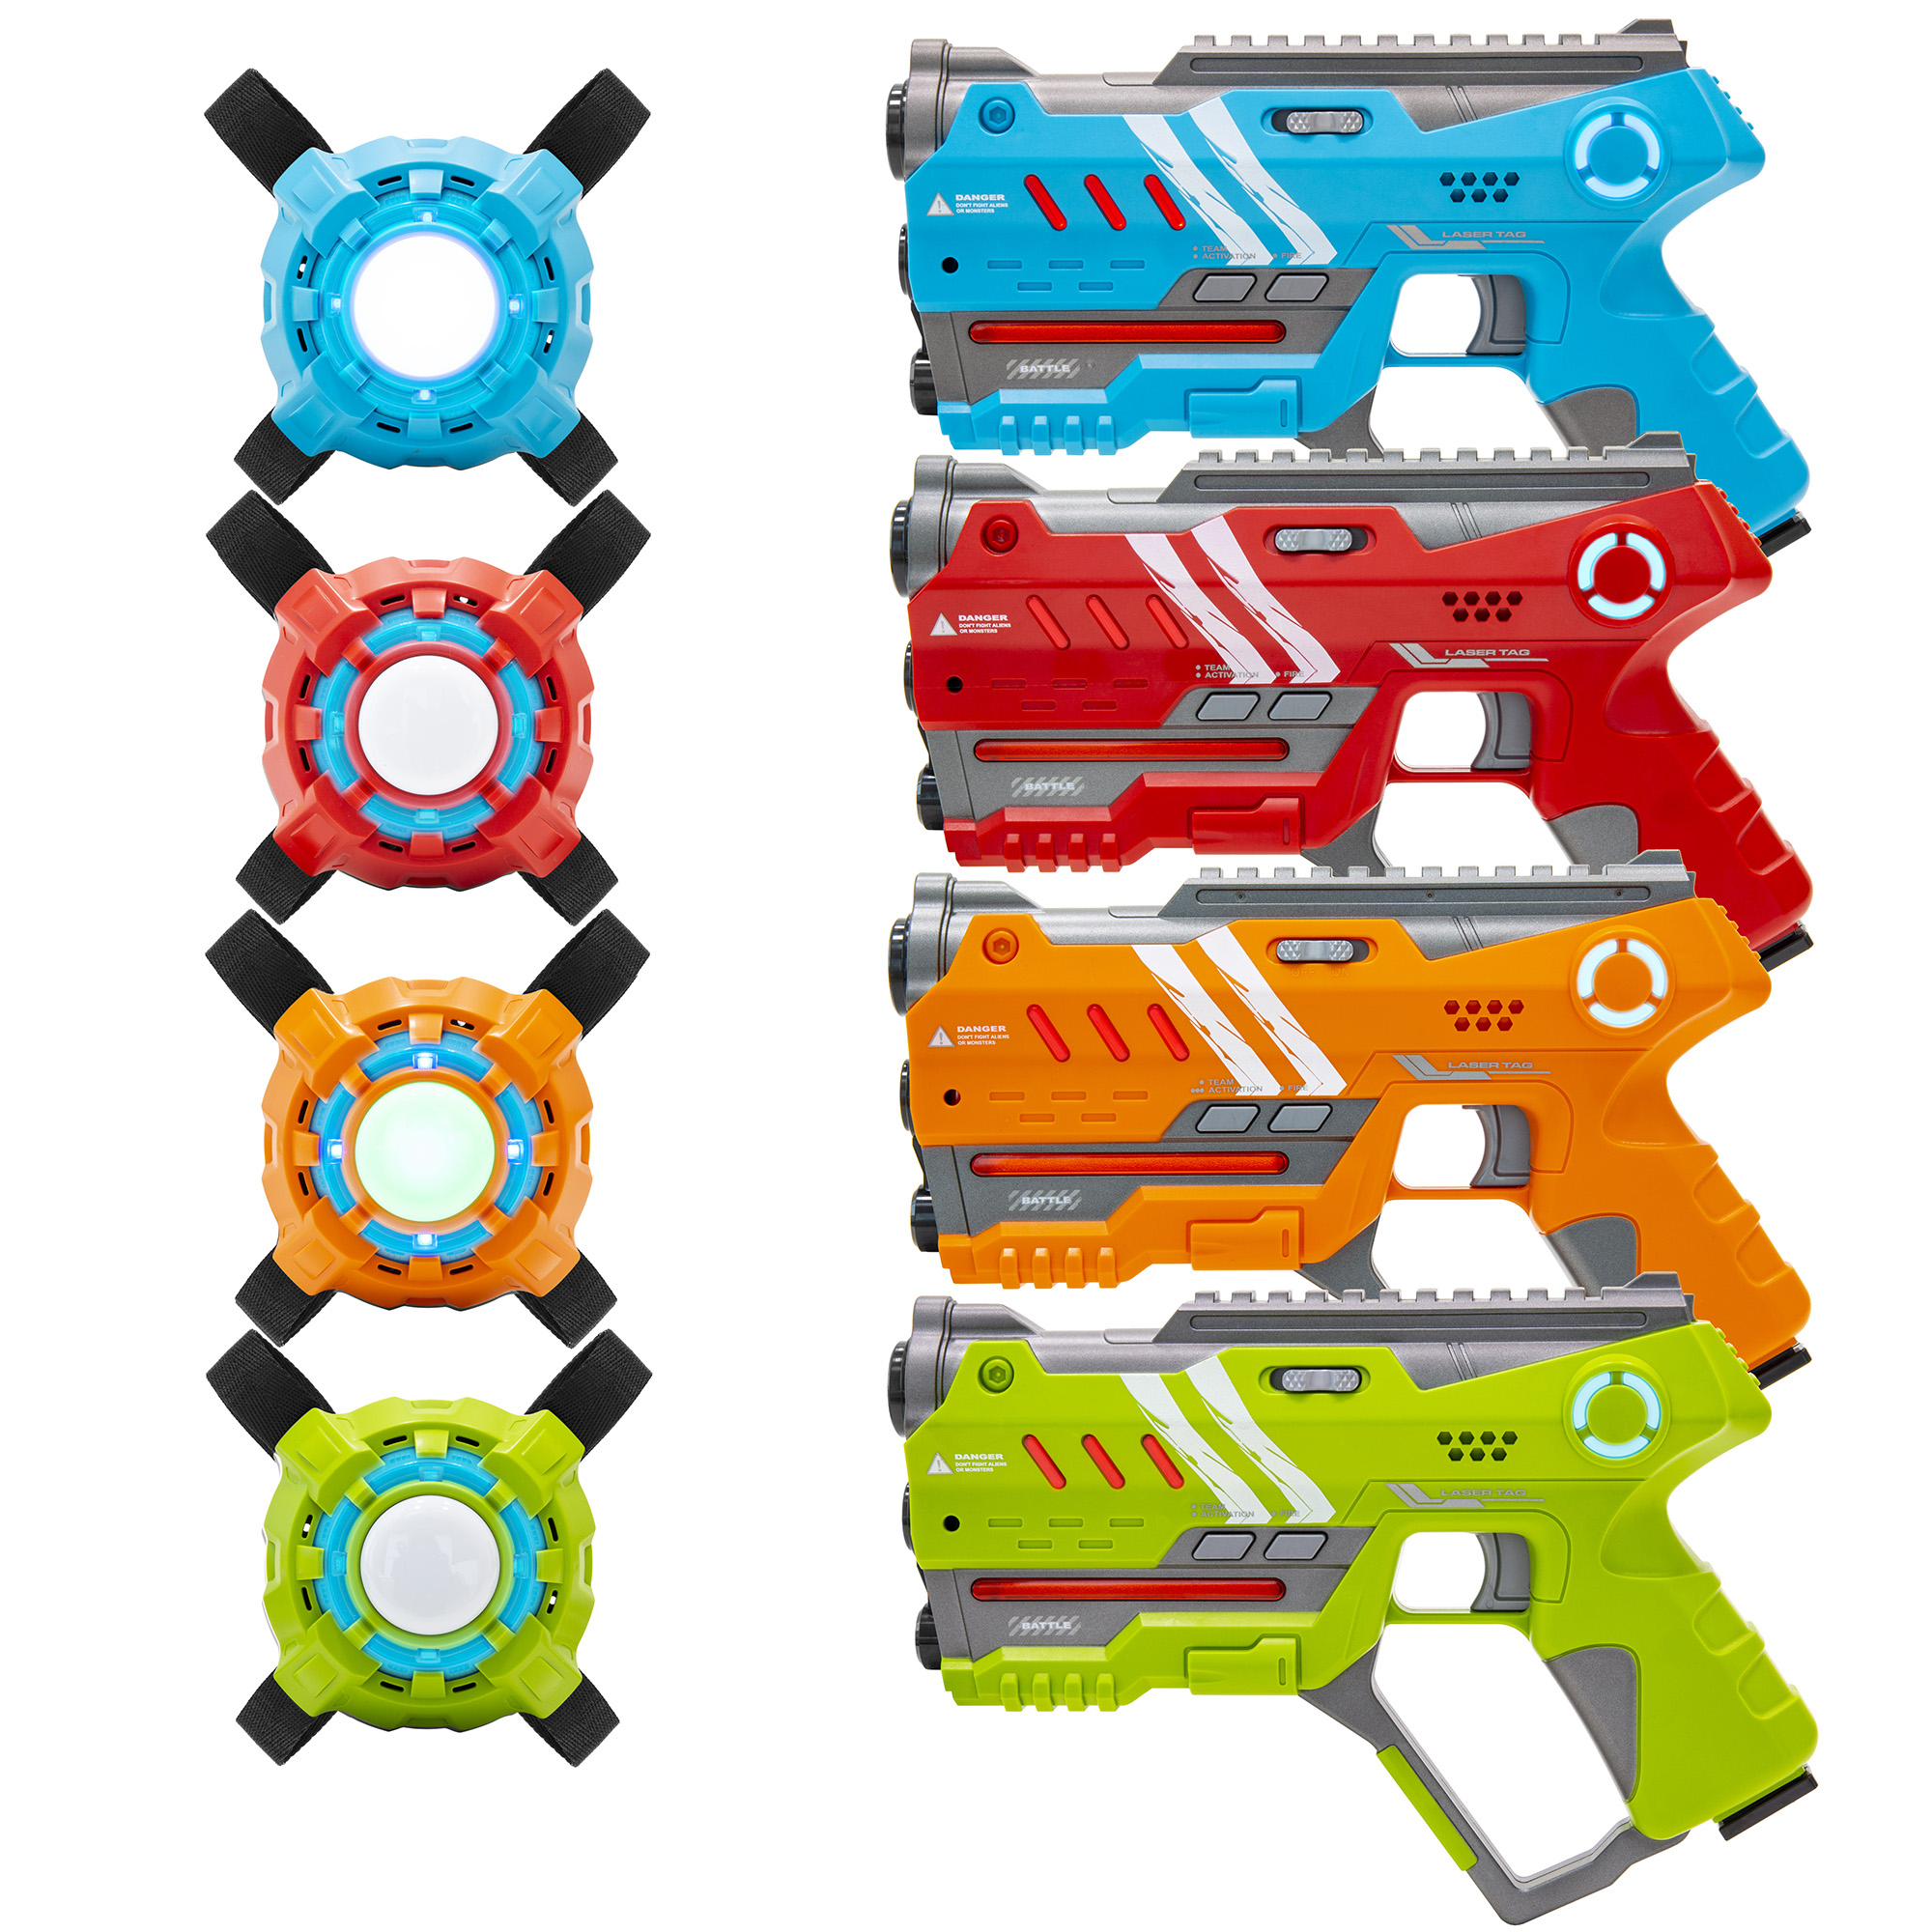 Best Choice Products Set of 4 Multiplayer Infrared Blaster Laser Tag Toys w/ Vests, Backwards Compatible - Multi